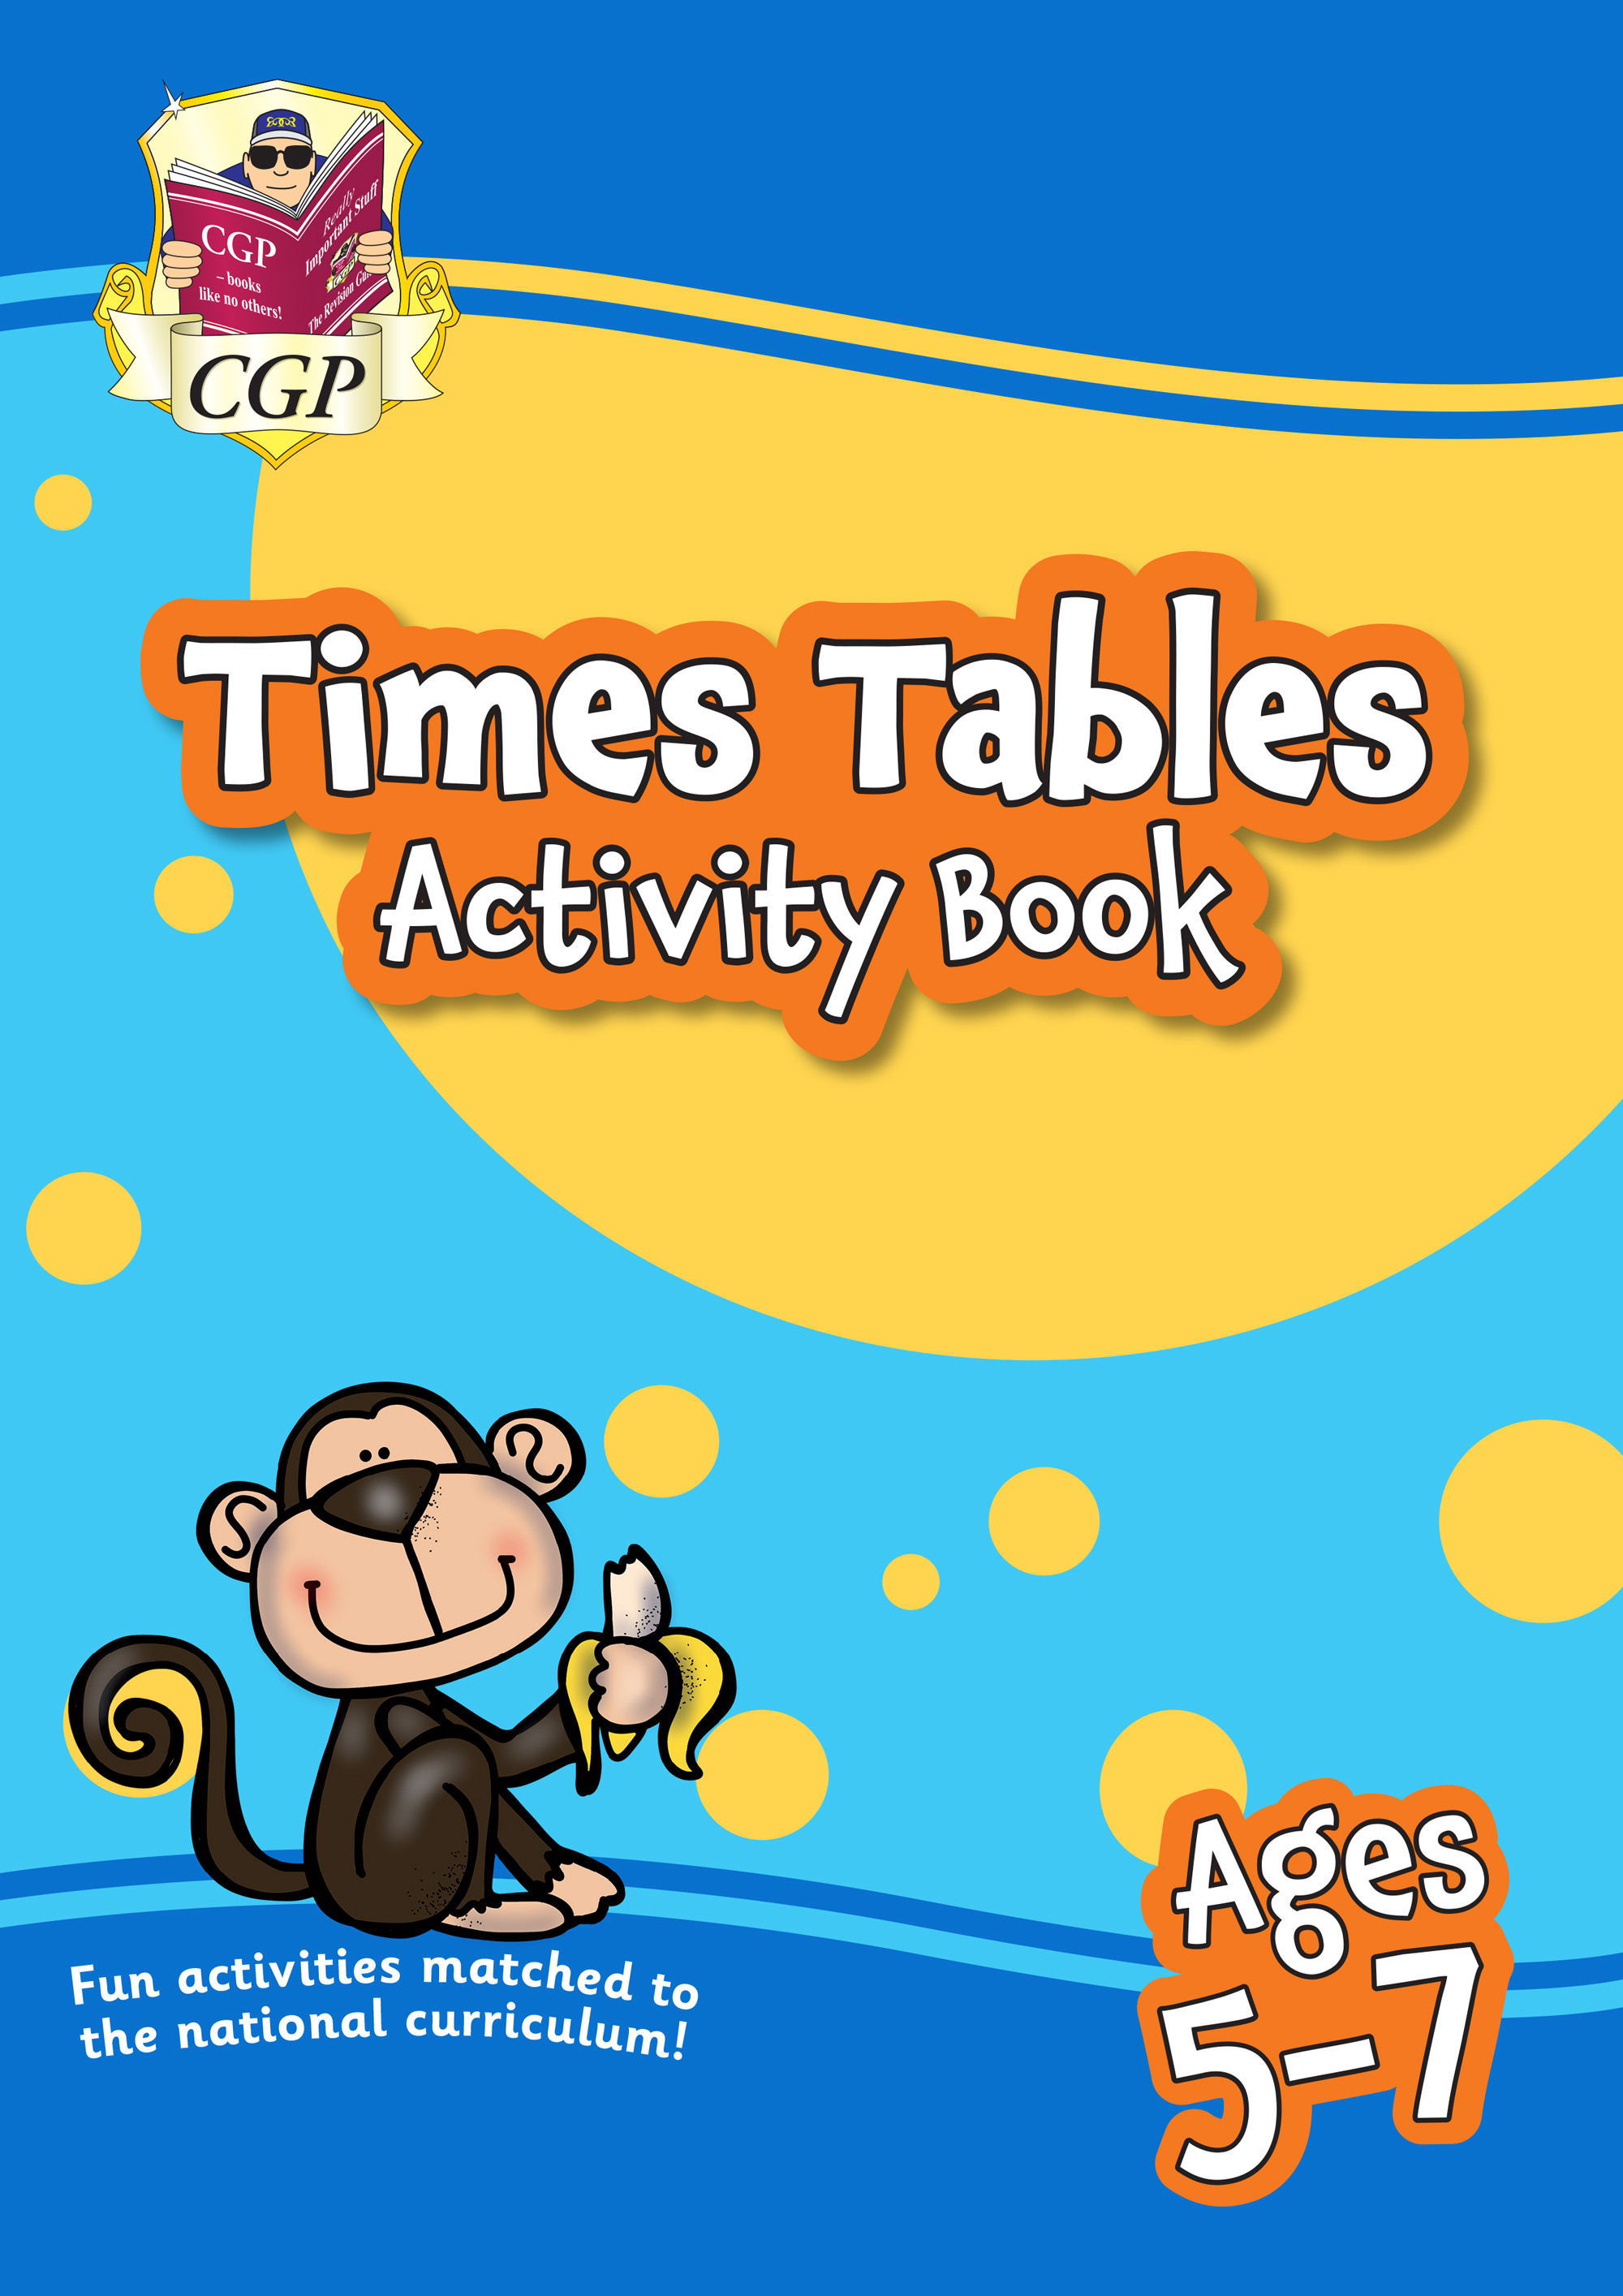 MPFTT11 - New Times Tables Activity Book for Ages 5-7: perfect for back-to-school catch-up